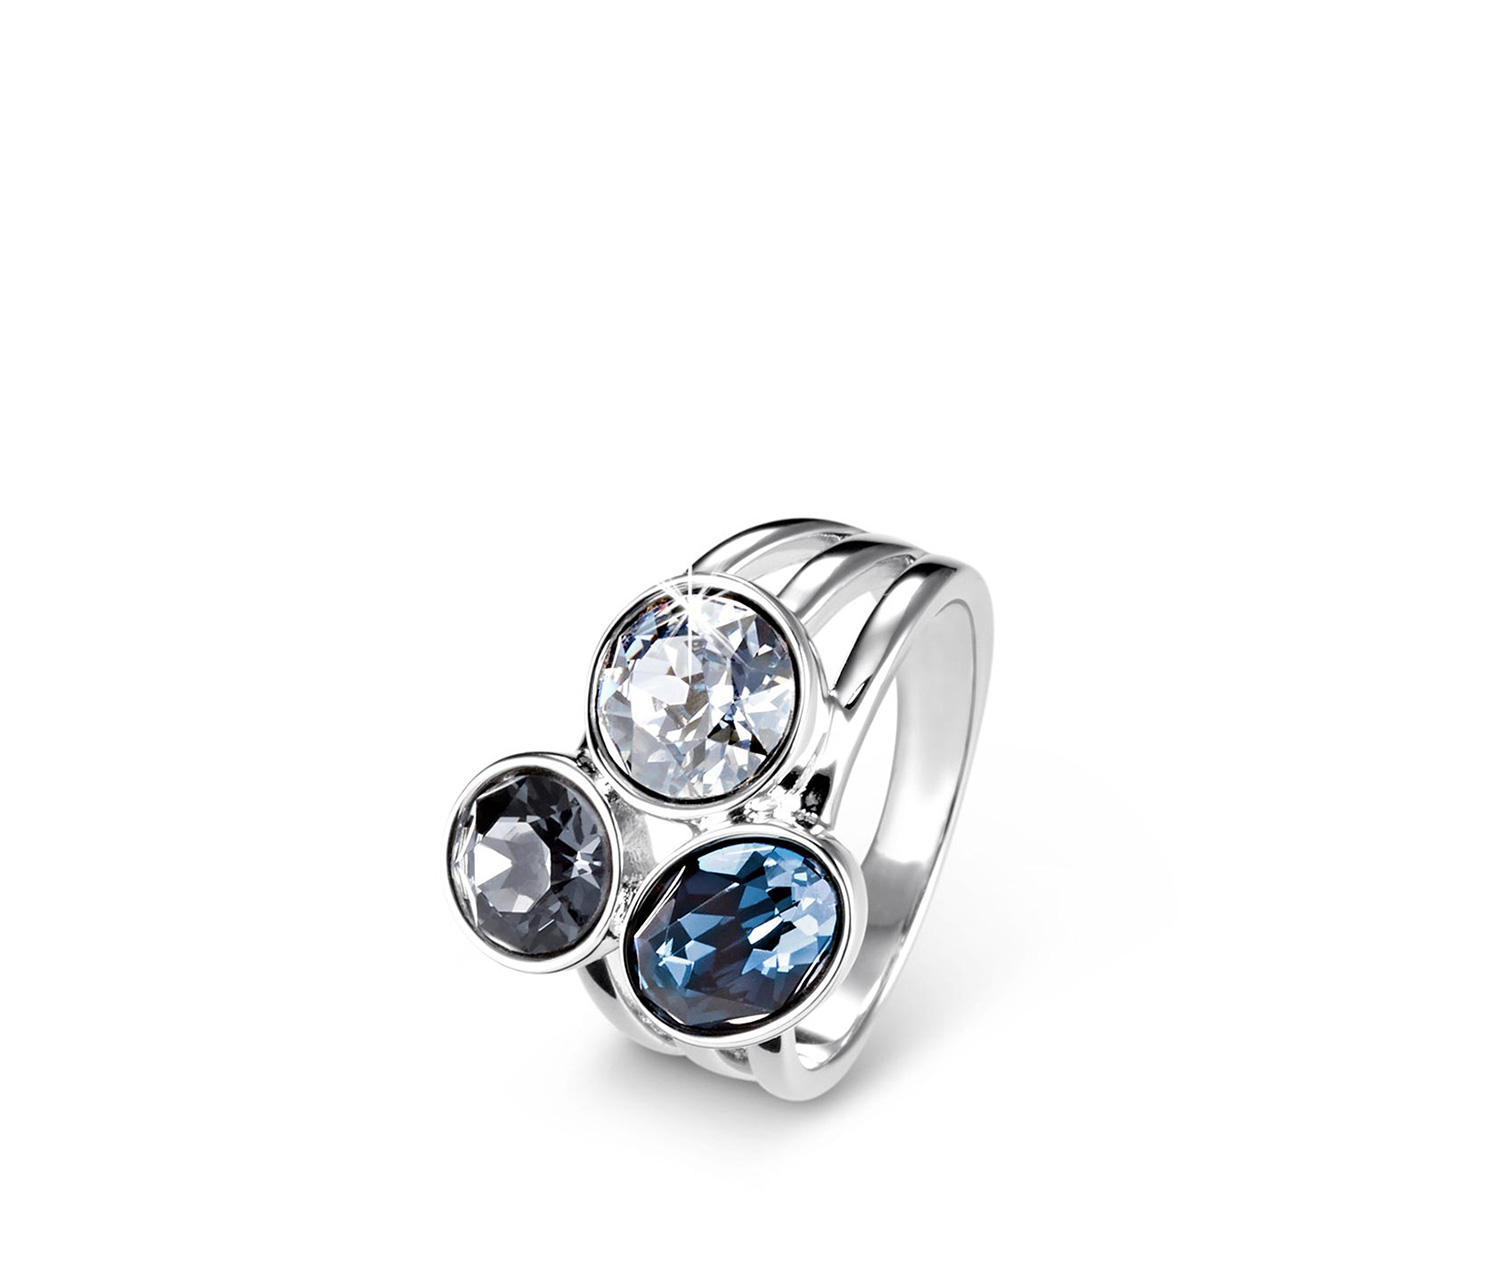 Women's Ring Decorated With Swarovski Crystals, Silver/Blue/Gray